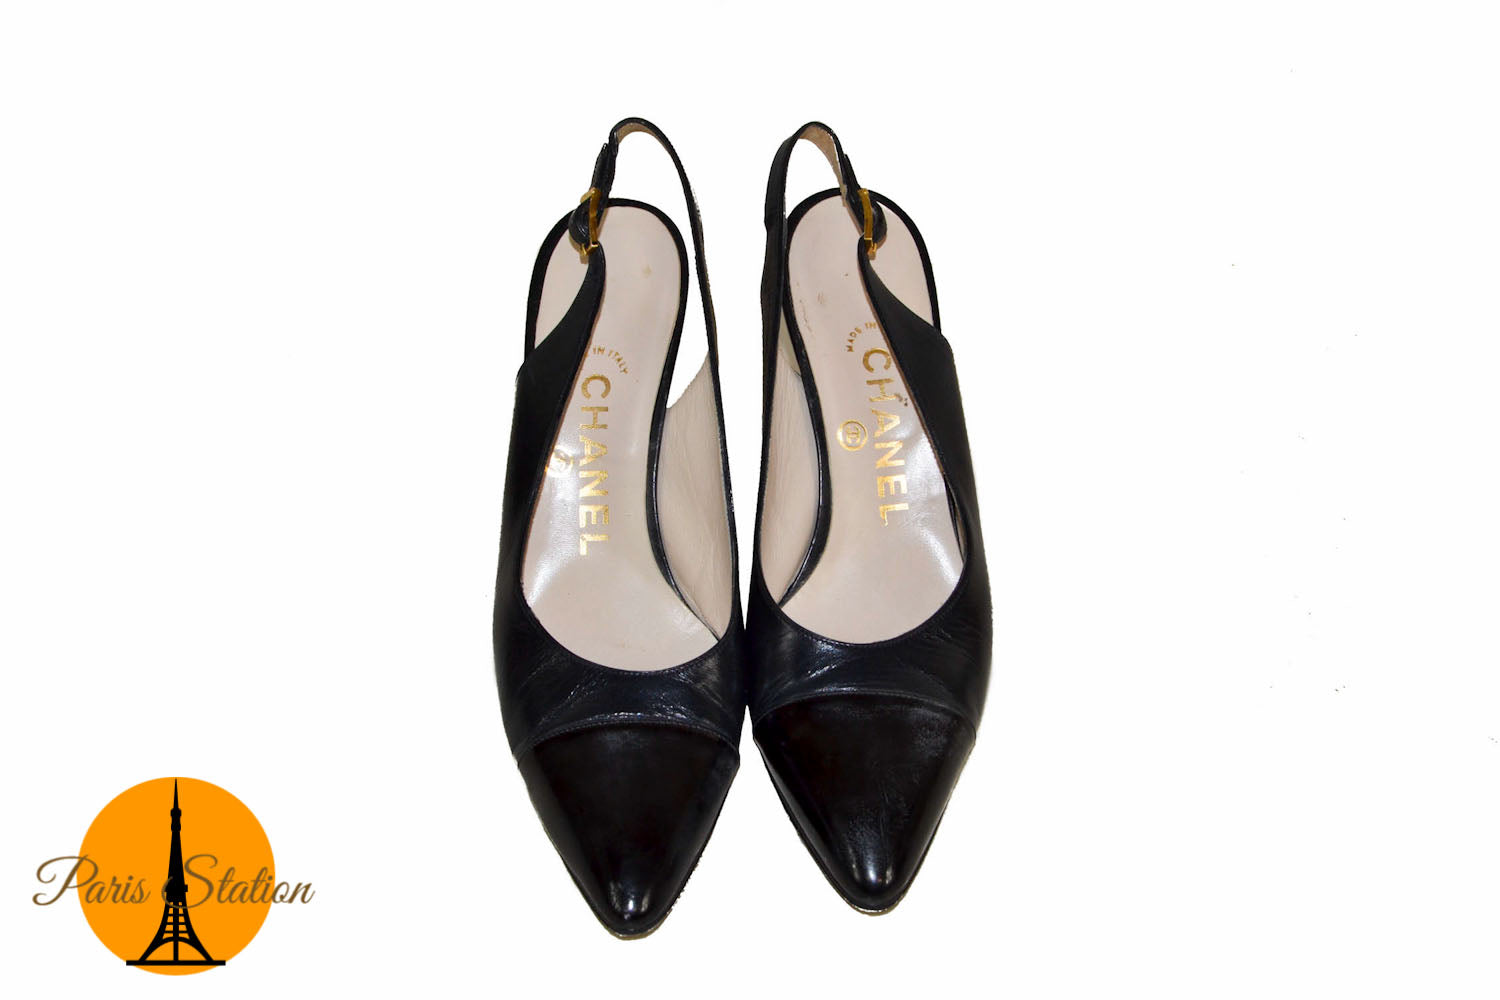 98189d03a4d Authentic Chanel Black Leather Slingback Heels Shoes Size 35